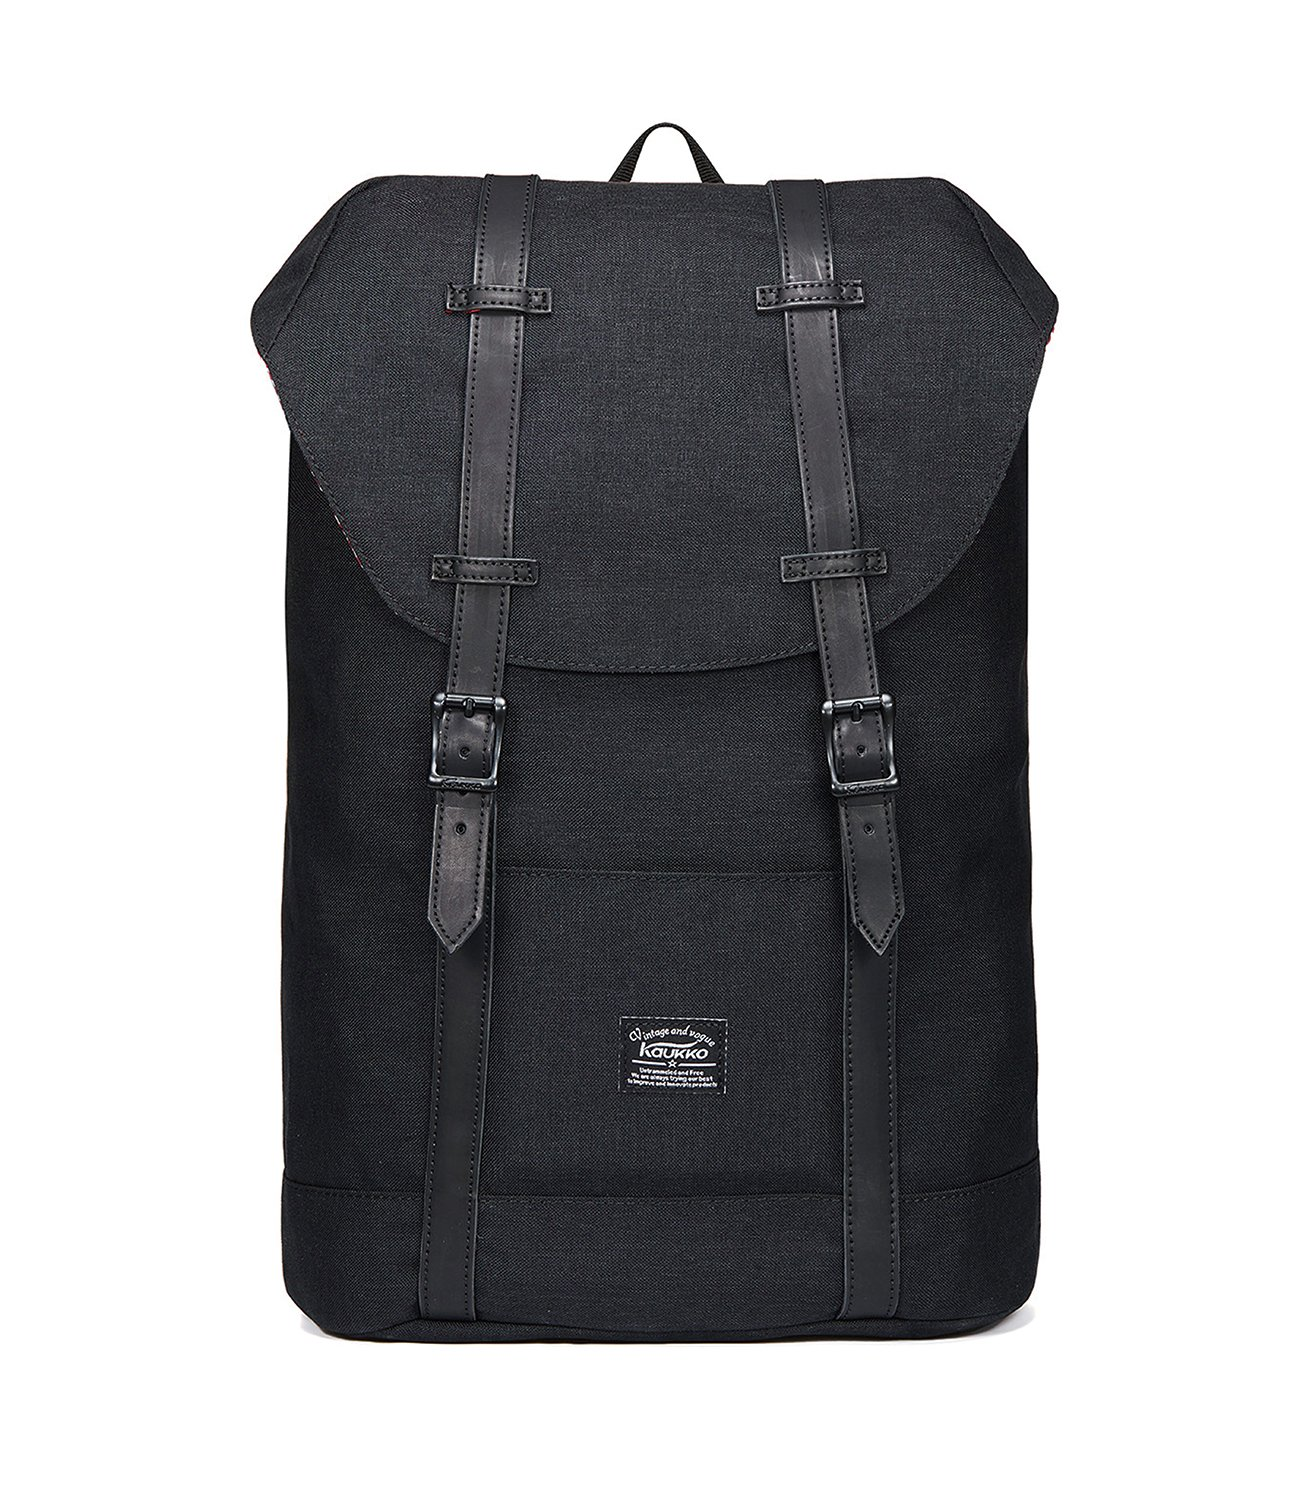 Lightweight Outdoor Travel Backpack Casual Hiking&Camping Rucksack School Daypack Laptop Backpack for 15'' Laptop & Tablets by KAUKKO(LINEN-BLACK)